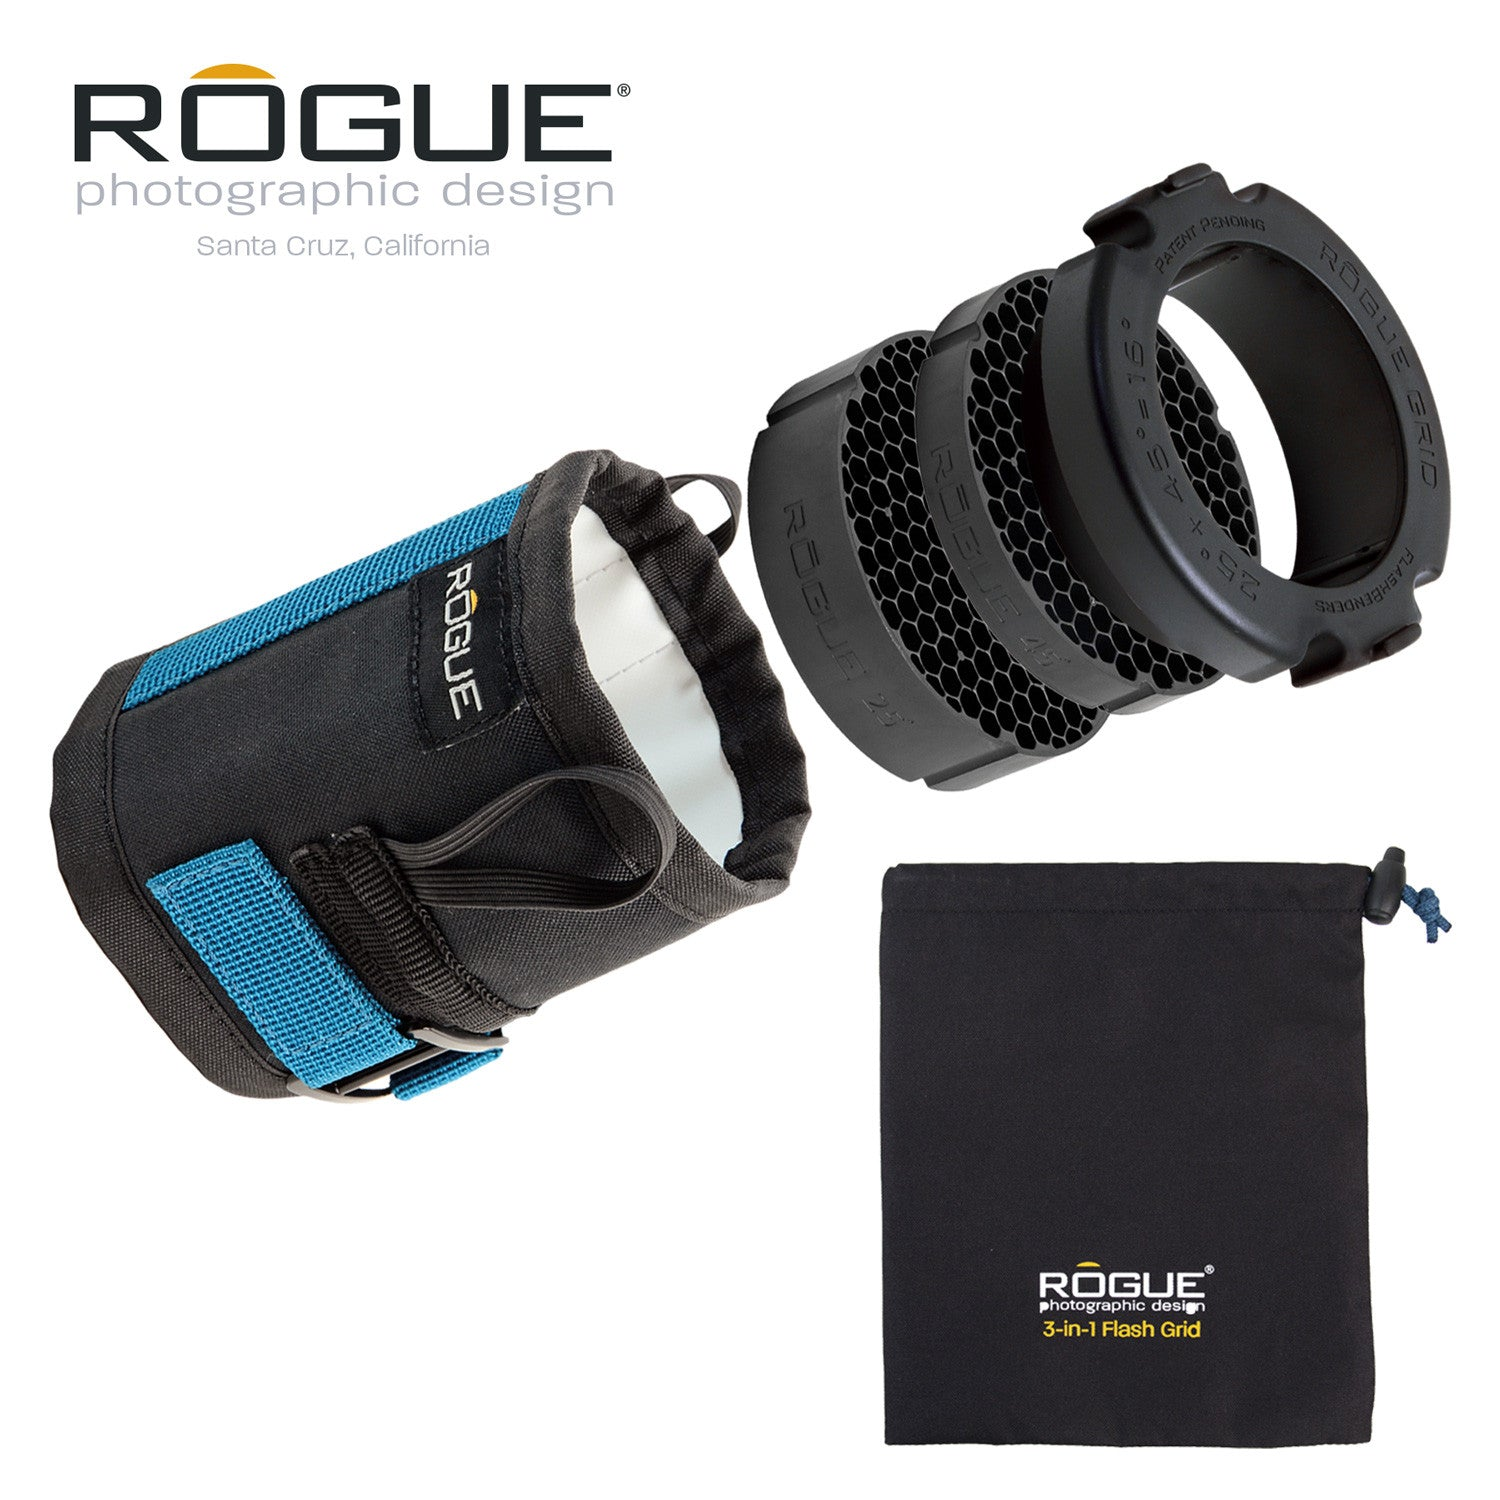 rogue 3 in 1 flash grid rogue photographic design